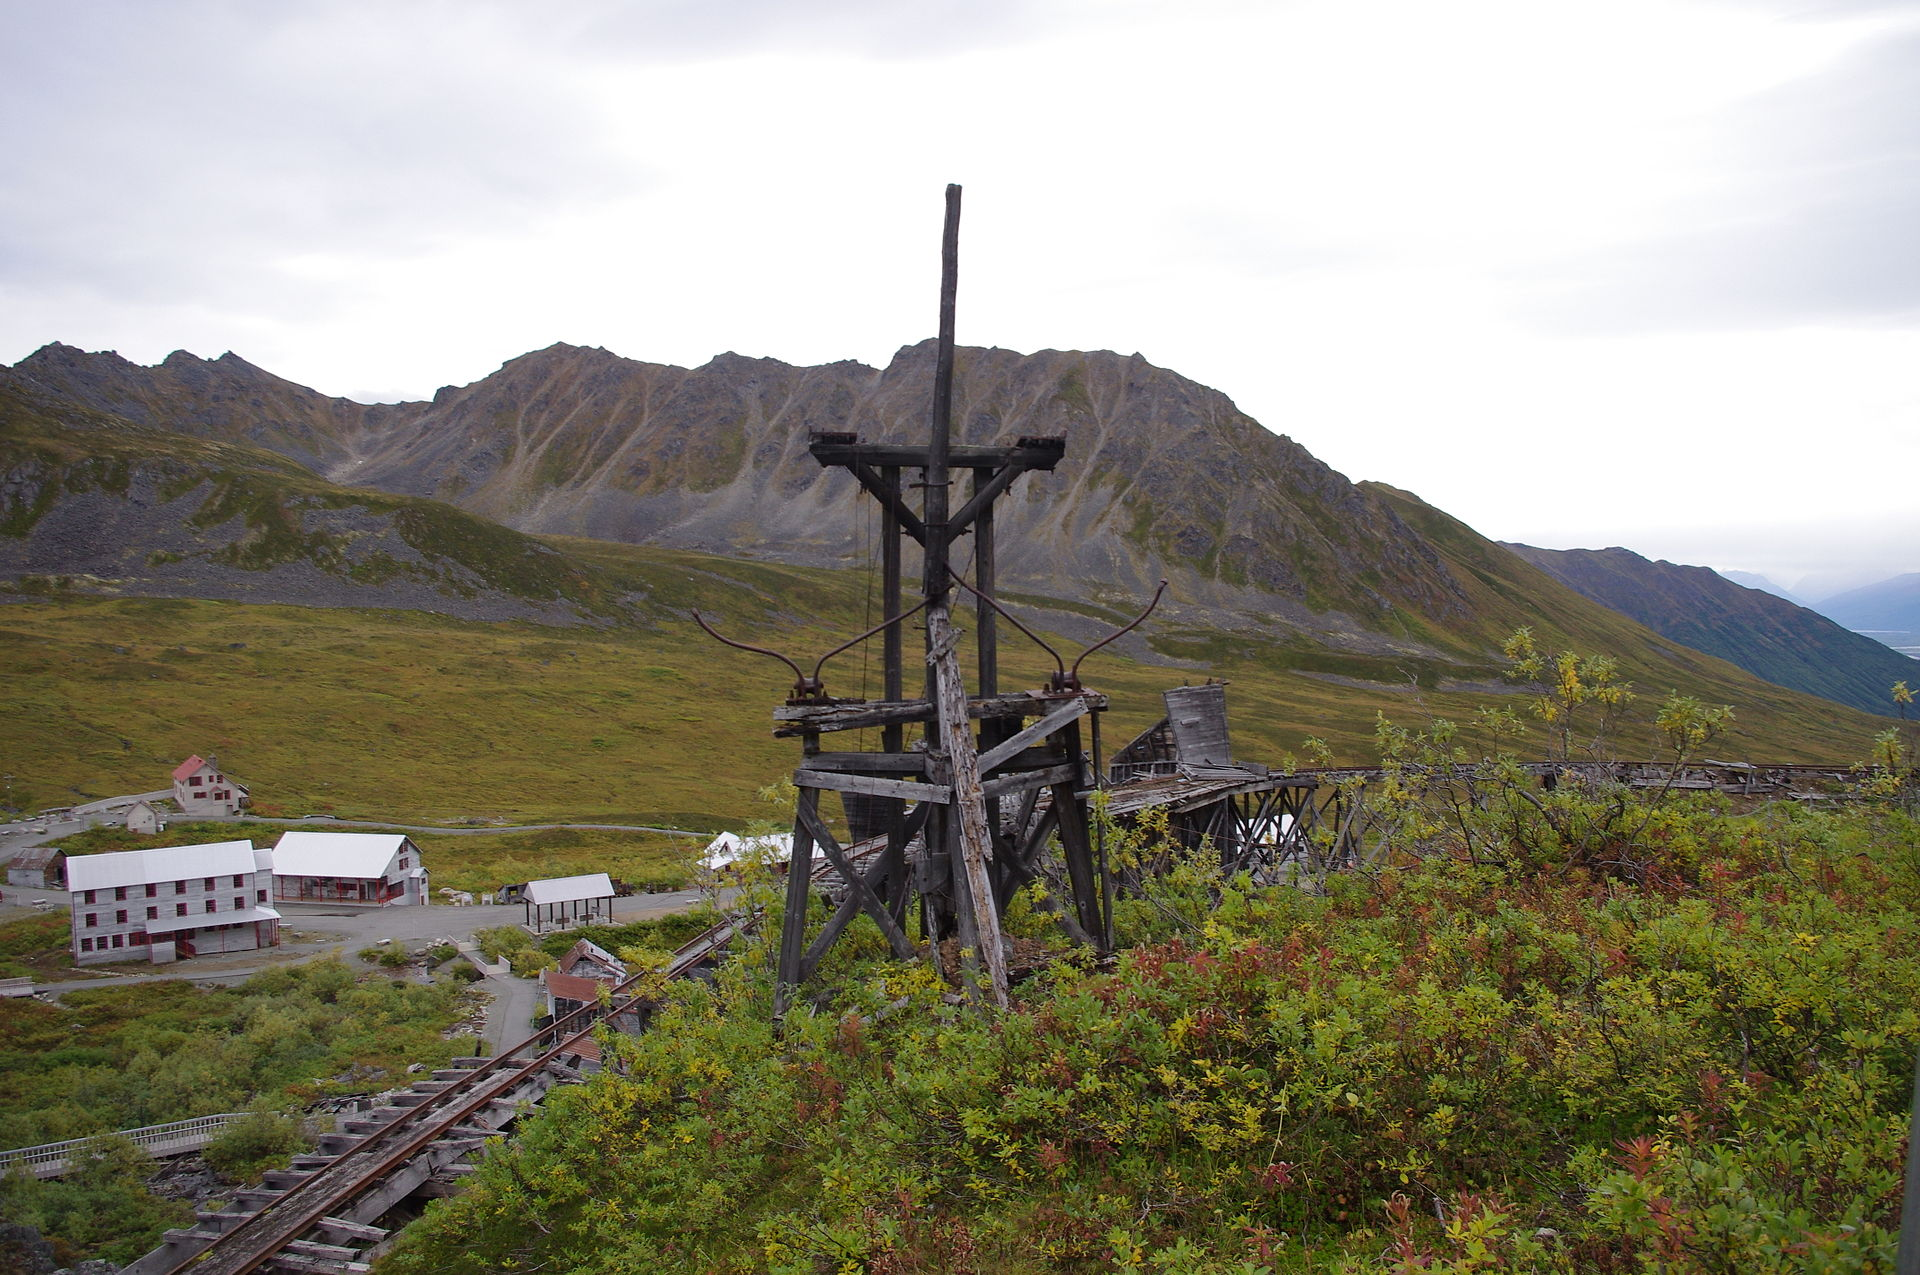 Remnants of the mine